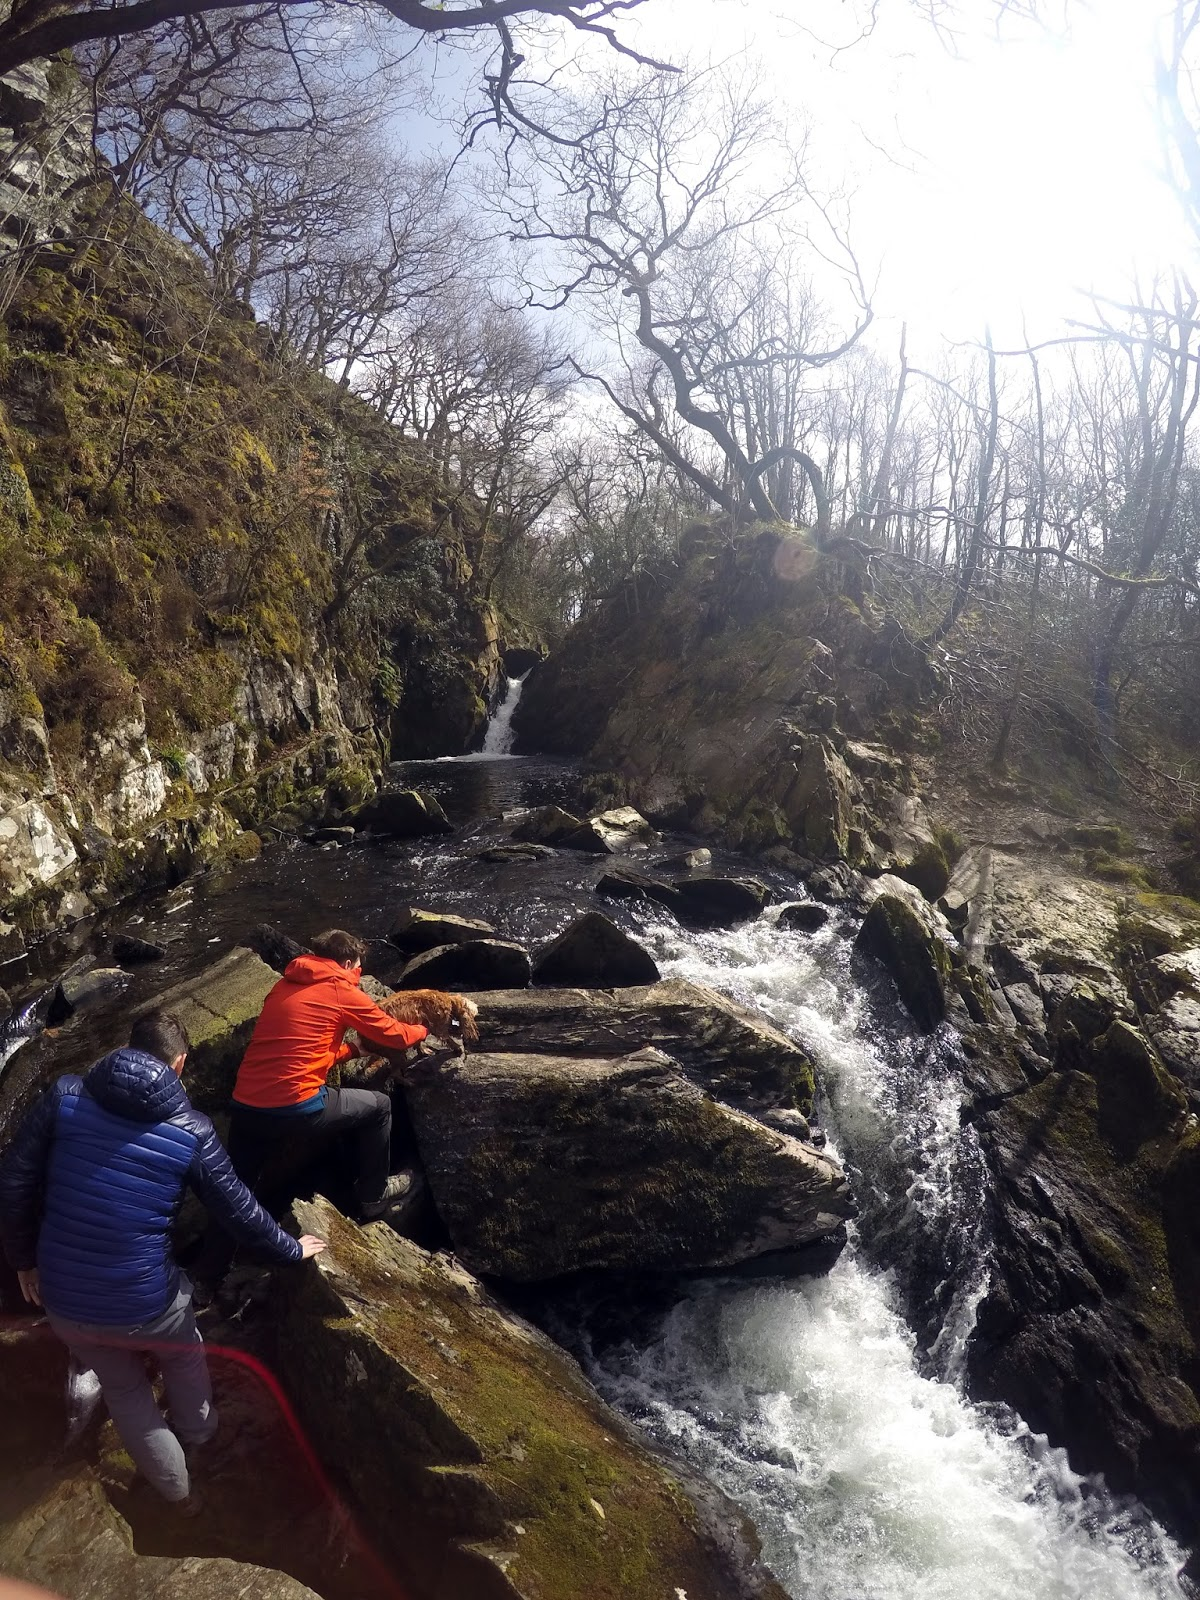 Wales, Camping, Nantcol, waterfall, nature, stars, galaxy, exploring, natural, digital detox, reconnecting, live every day, UK, Snowdonia, Welsh, adventure, travel